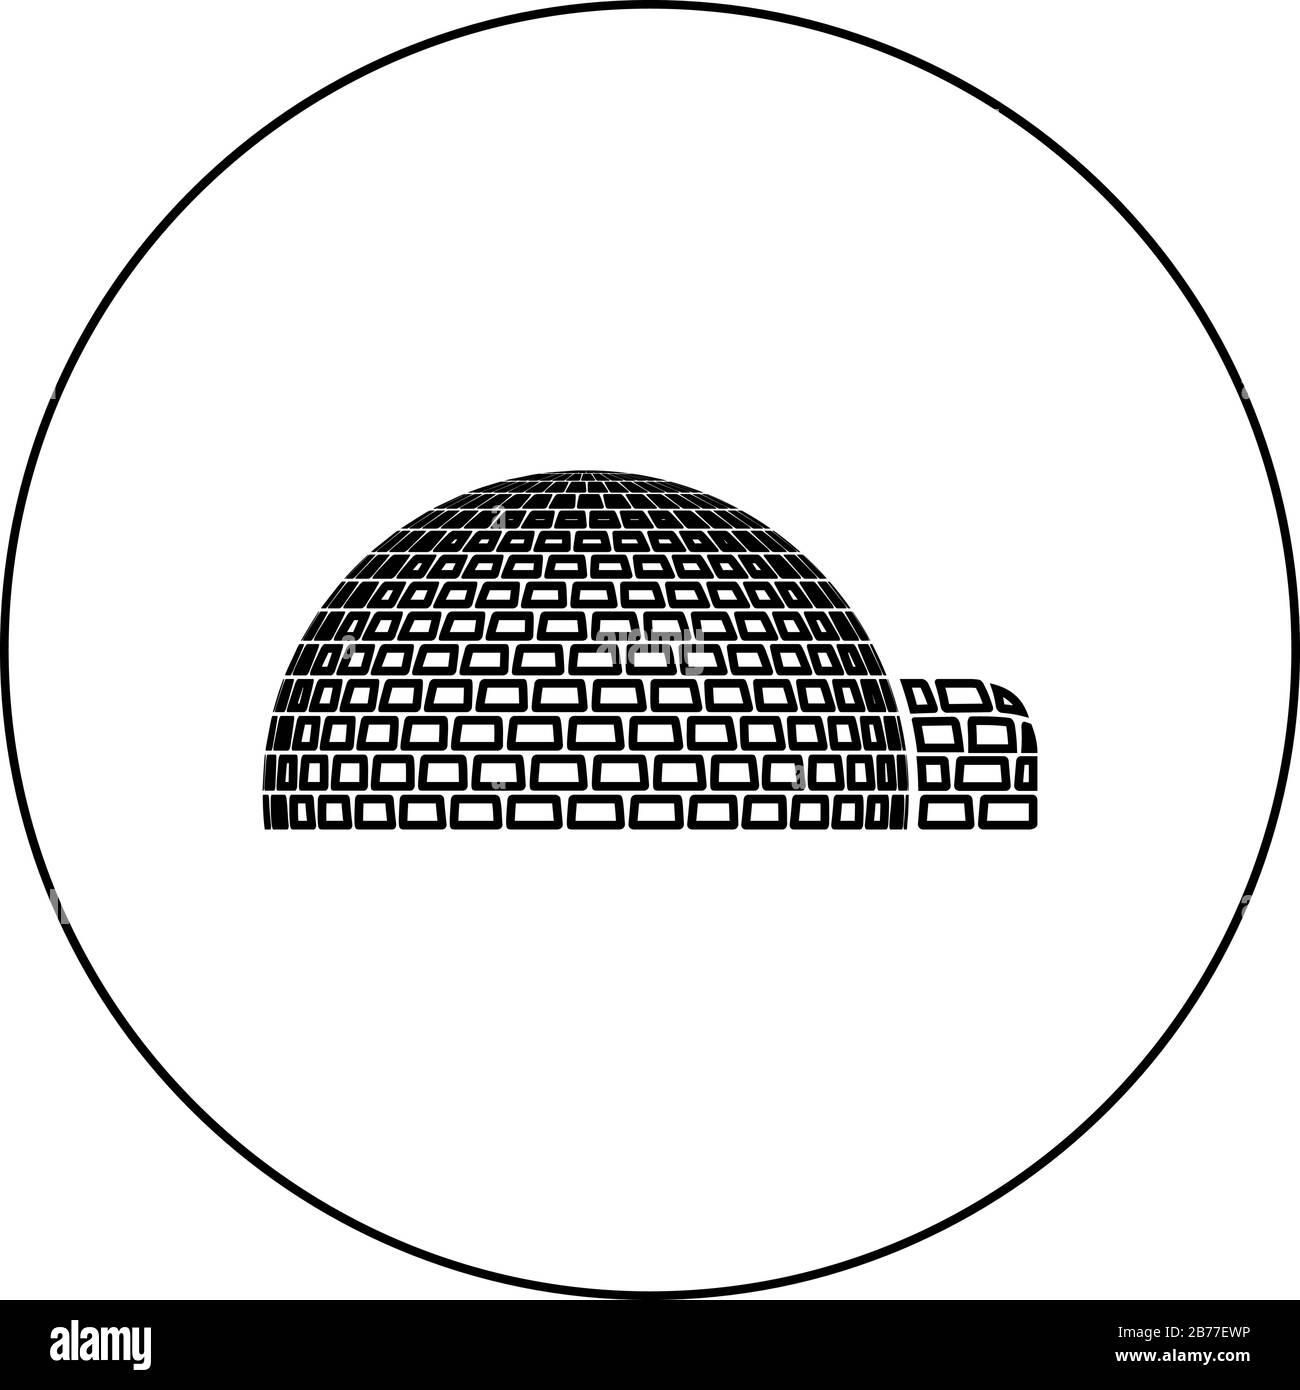 Igloo dwelling with icy cubes blocks Place when live inuits and eskimos Arctic home Dome shape icon in circle round outline black color vector Stock Vector